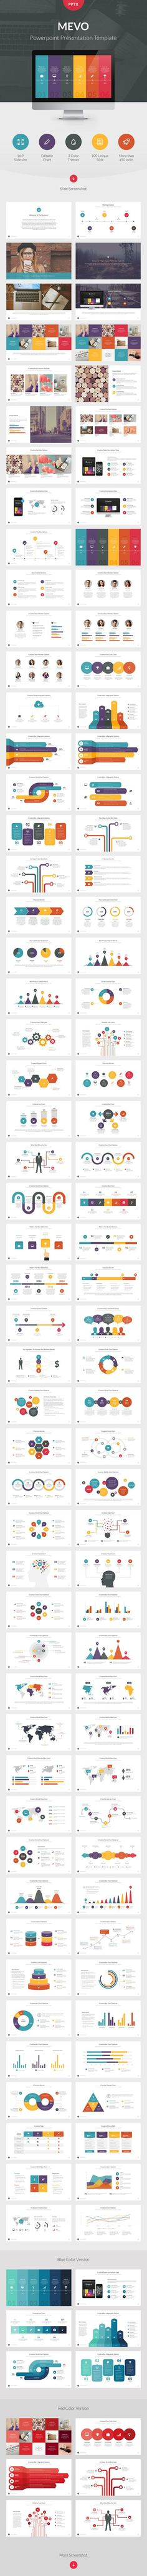 Best Presentation Design Inspiration Images On Pinterest Page - Fresh large check for presentation concept